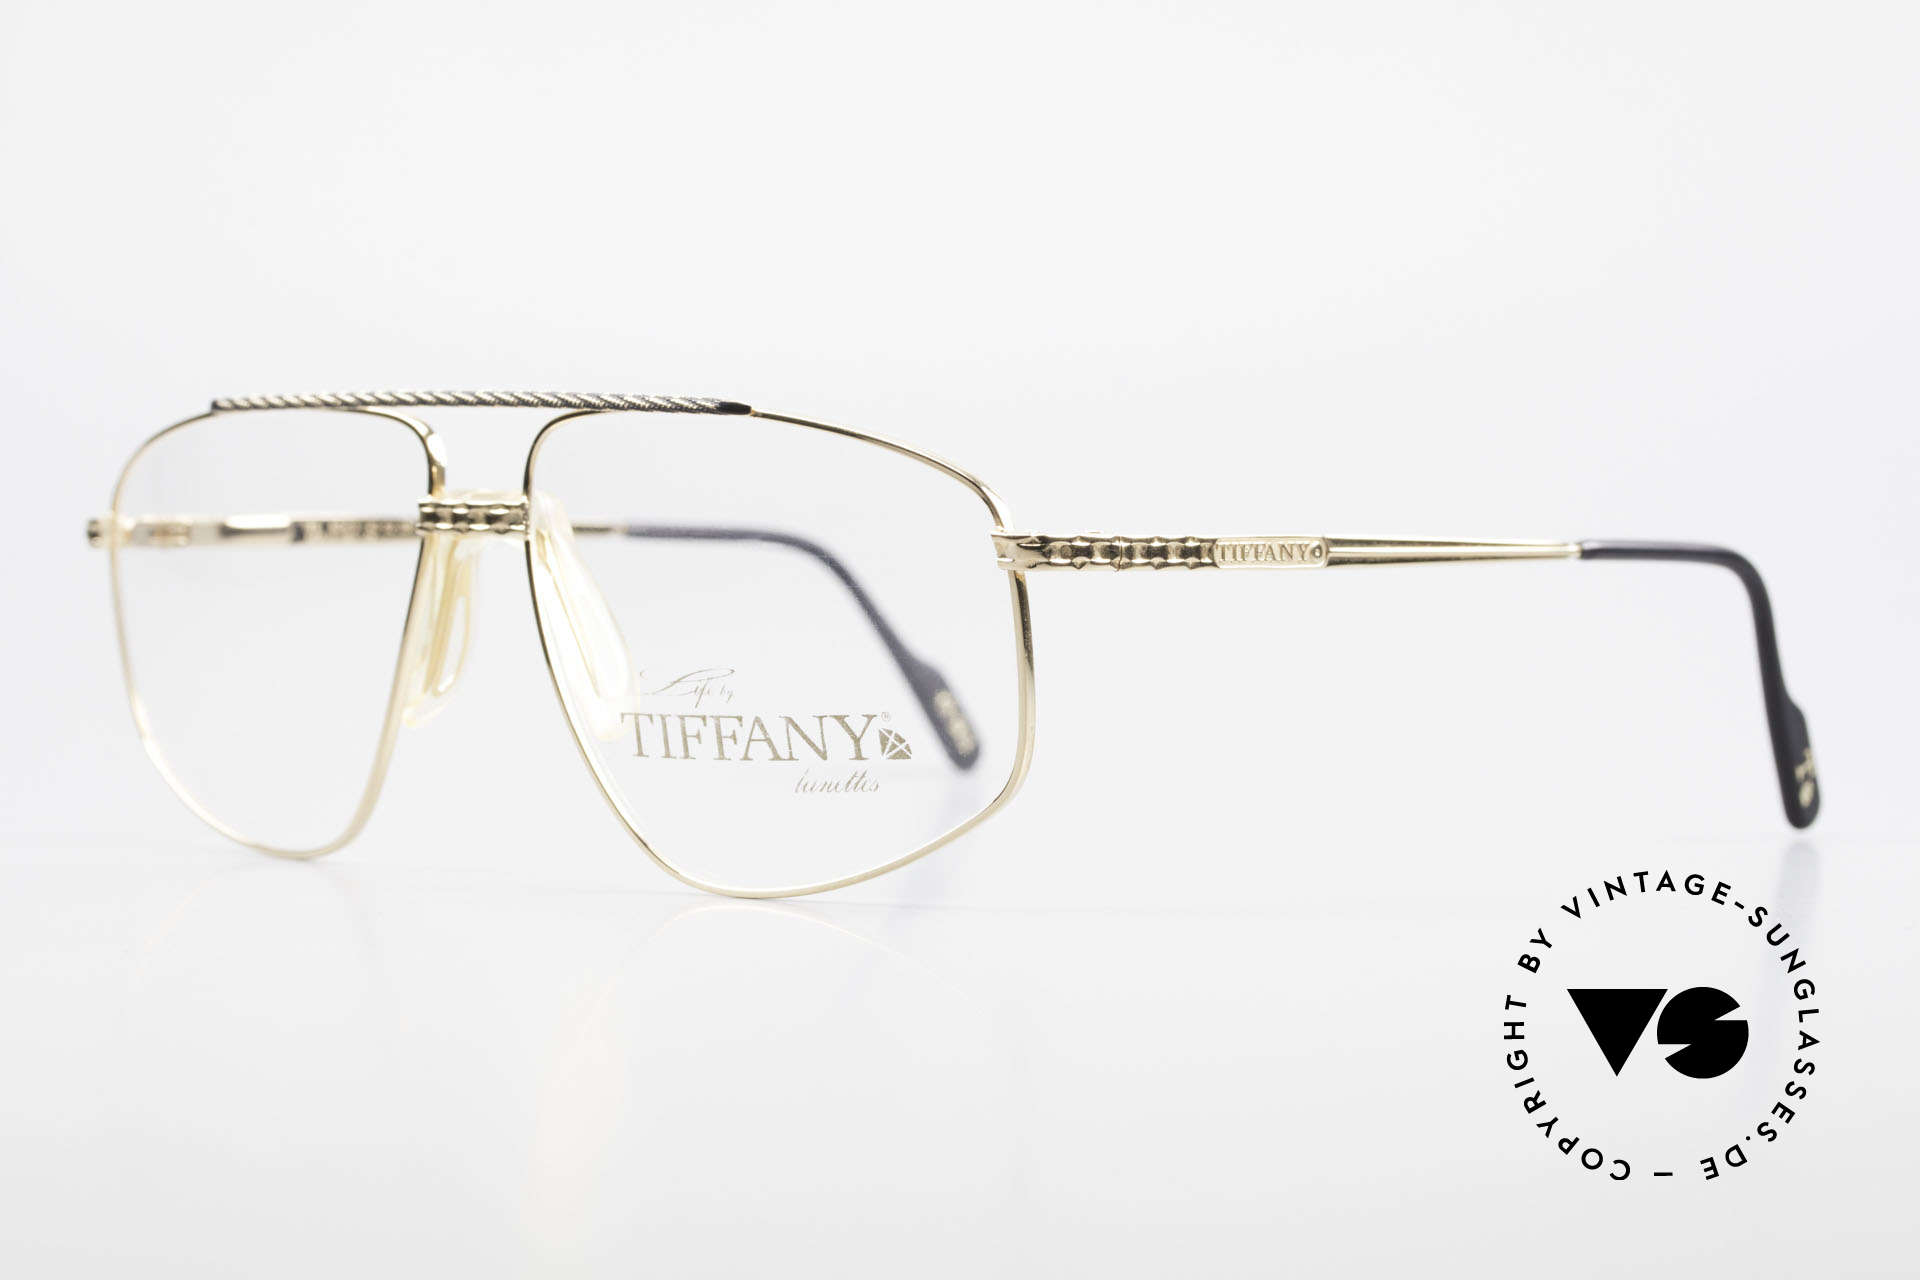 Tiffany T89 23kt Gold Plated Aviator Frame, men's aviator eyeglasses with spring hinges, size 60/13, Made for Men